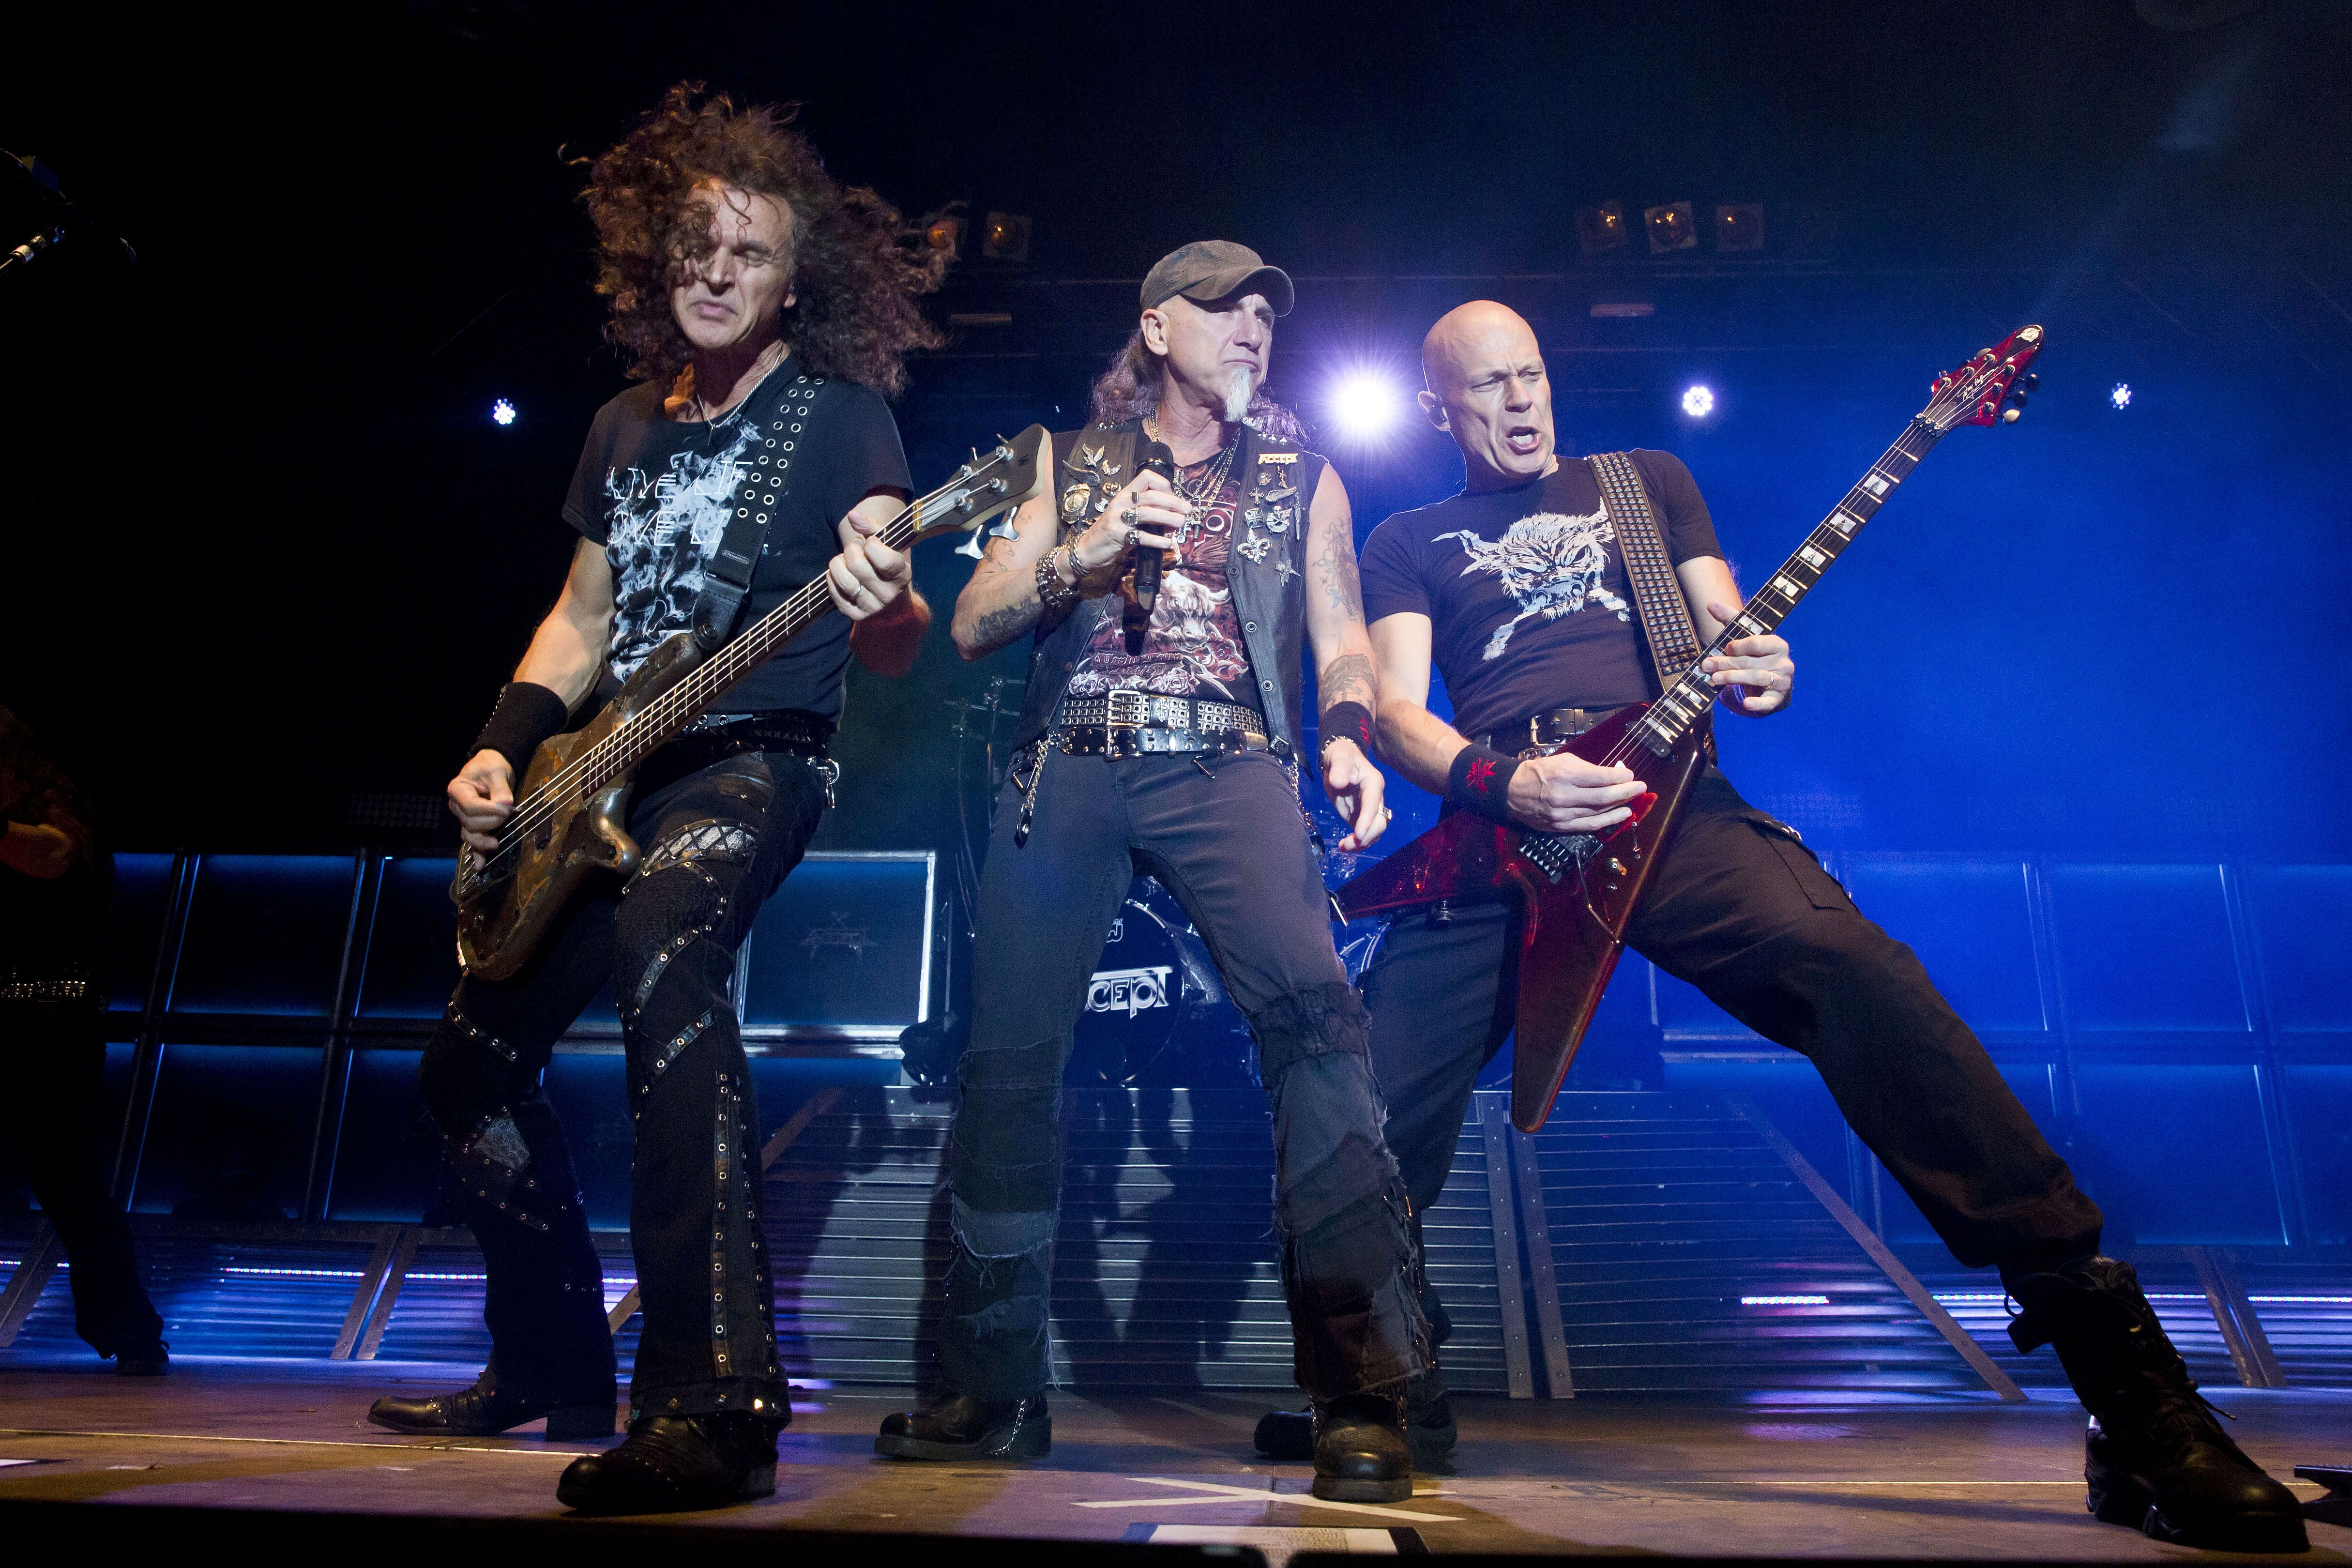 Peter Baltes, Mark Tornillo and Wolf Hoffmann of Accept